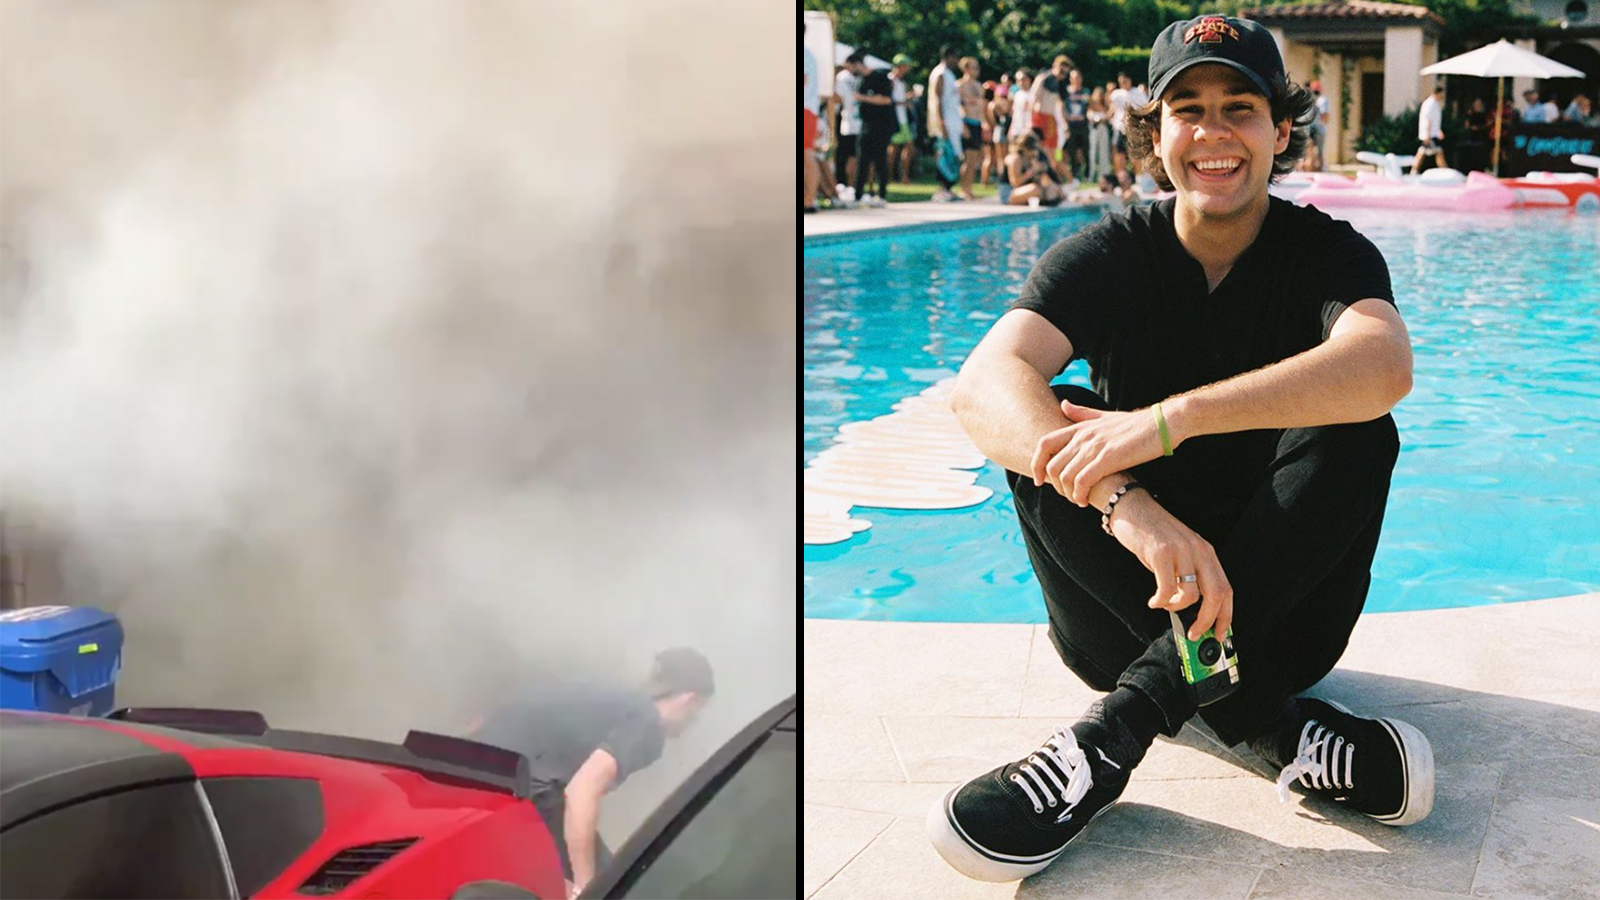 Nelk Boys And David Dobrik Hotbox A Garage With Leaf Blowers Dexerto See more of stevewilldoit on facebook. nelk boys and david dobrik hotbox a